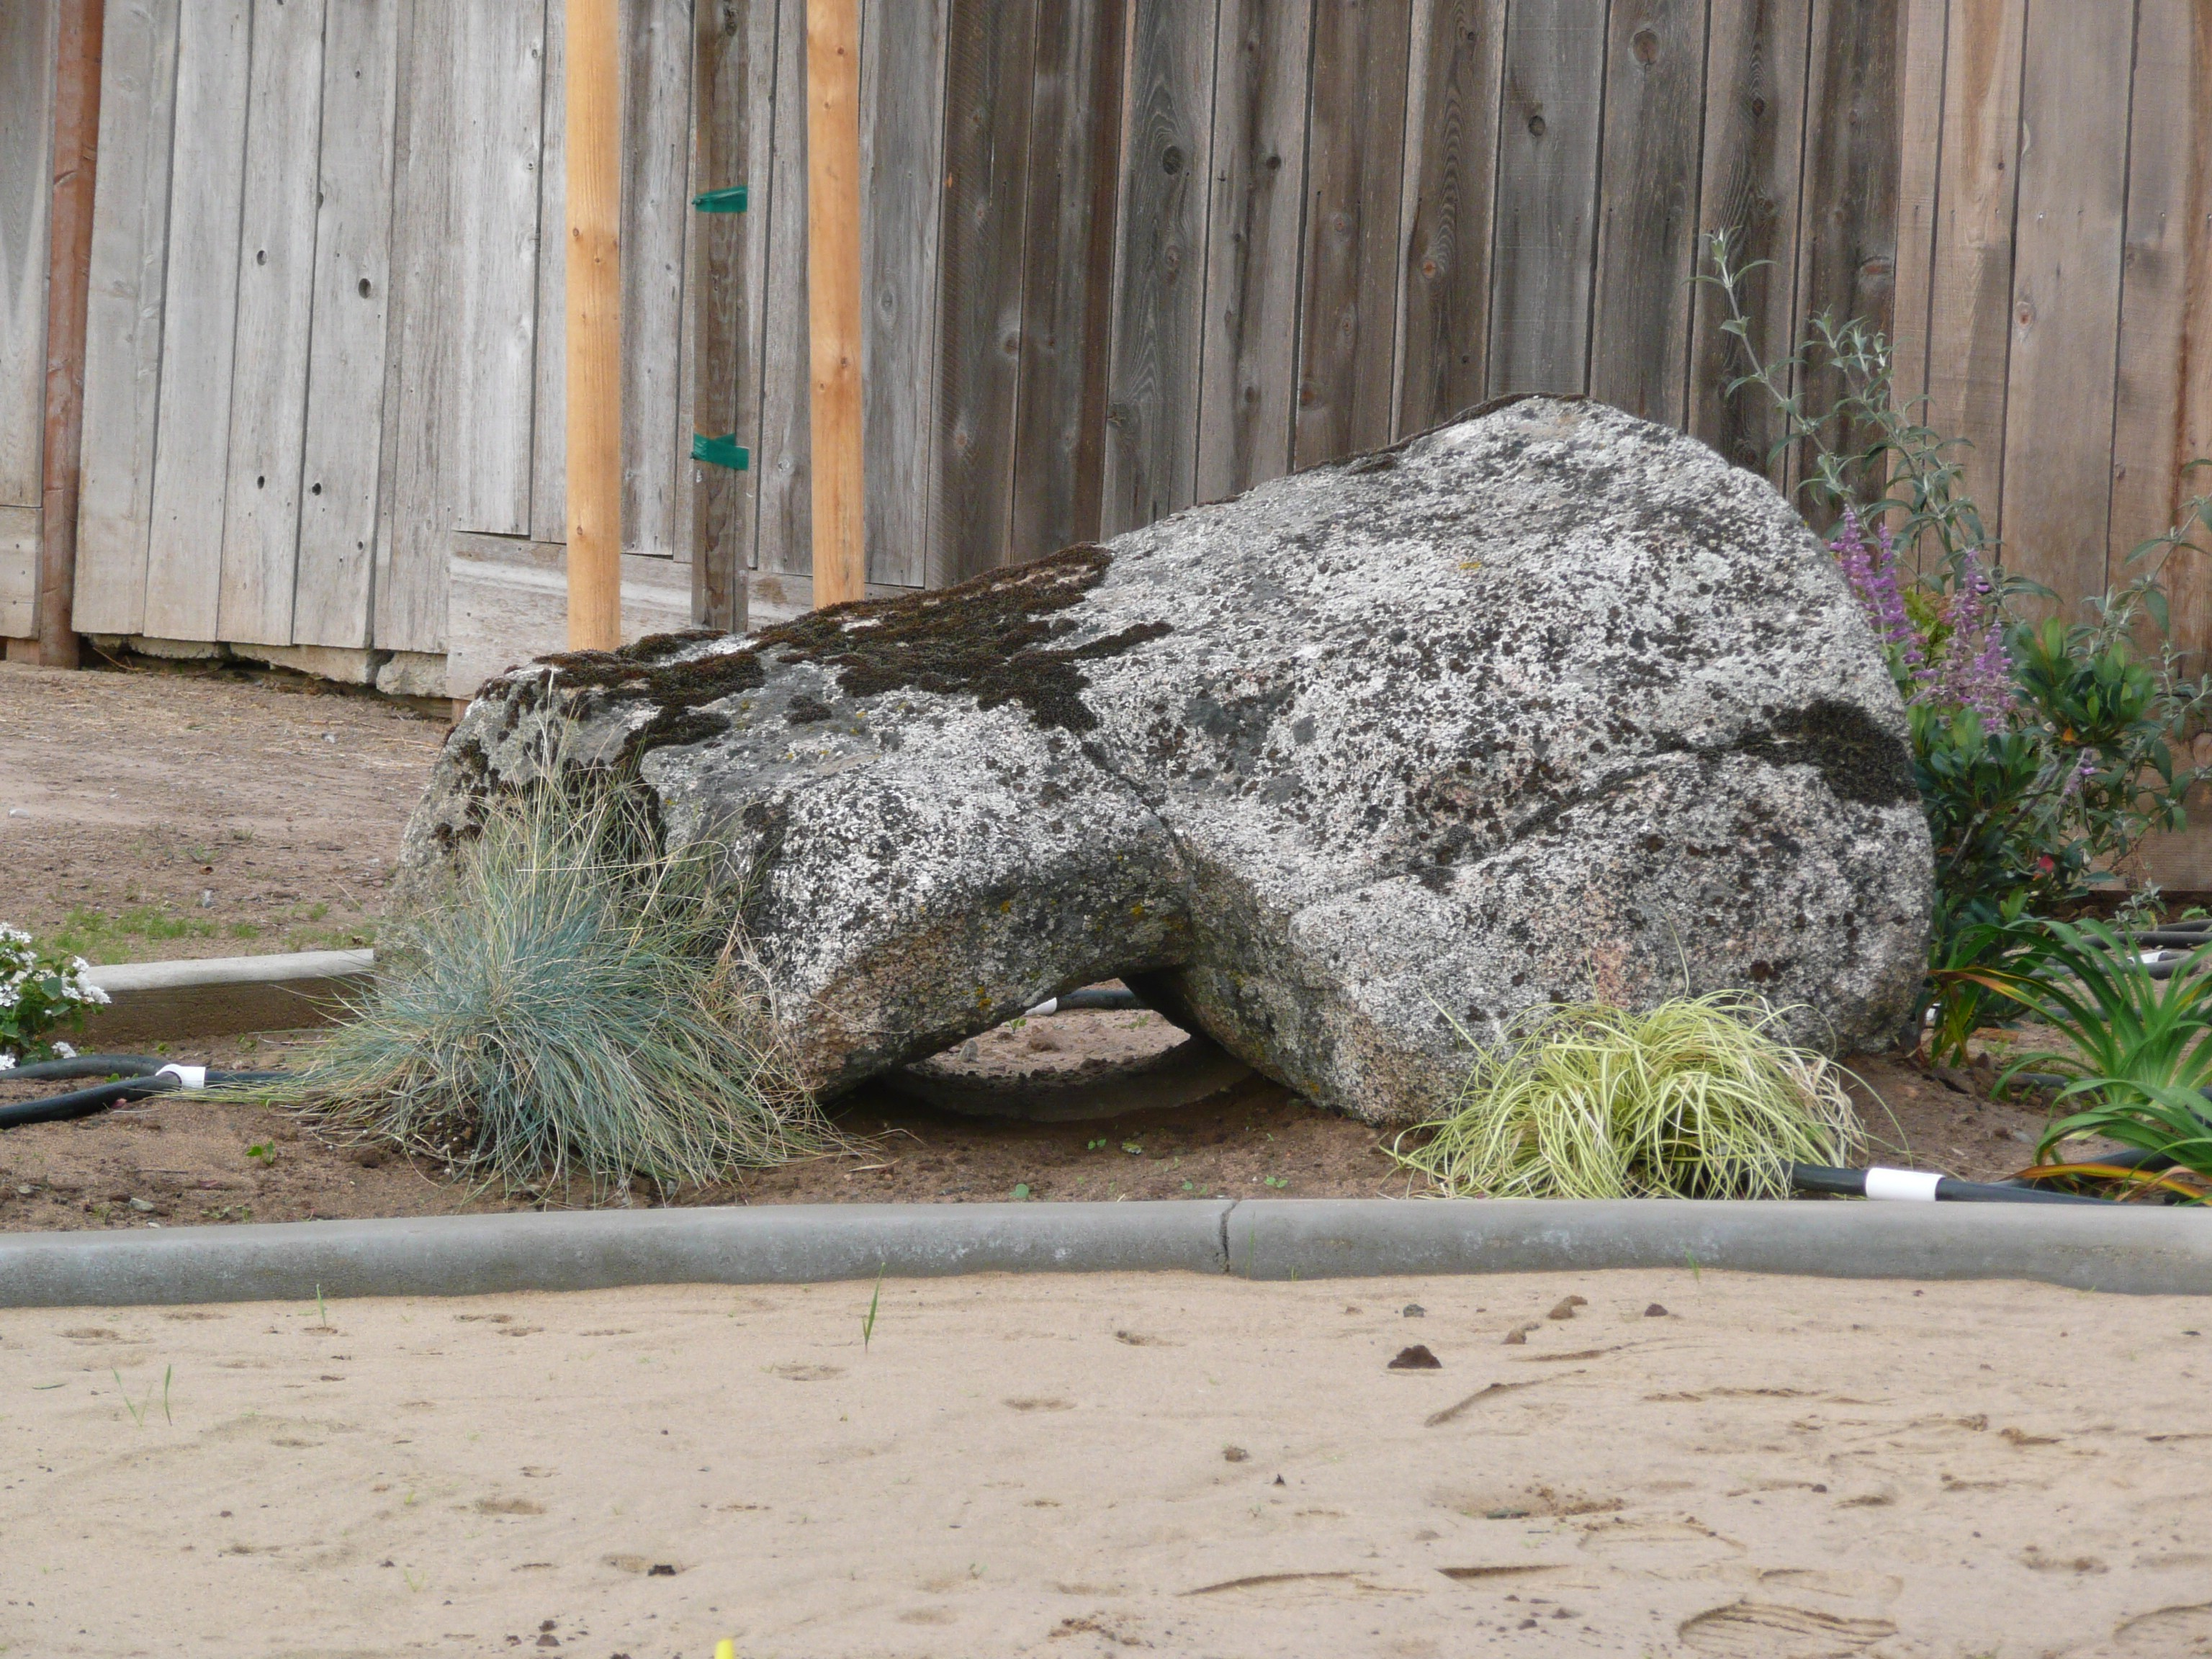 Boulders Are Used To Create Focal Points In The Landscape. Boulders Can Be  Used With A Combination Of Other Stones To Create Dry River Beds, Ponds, ...